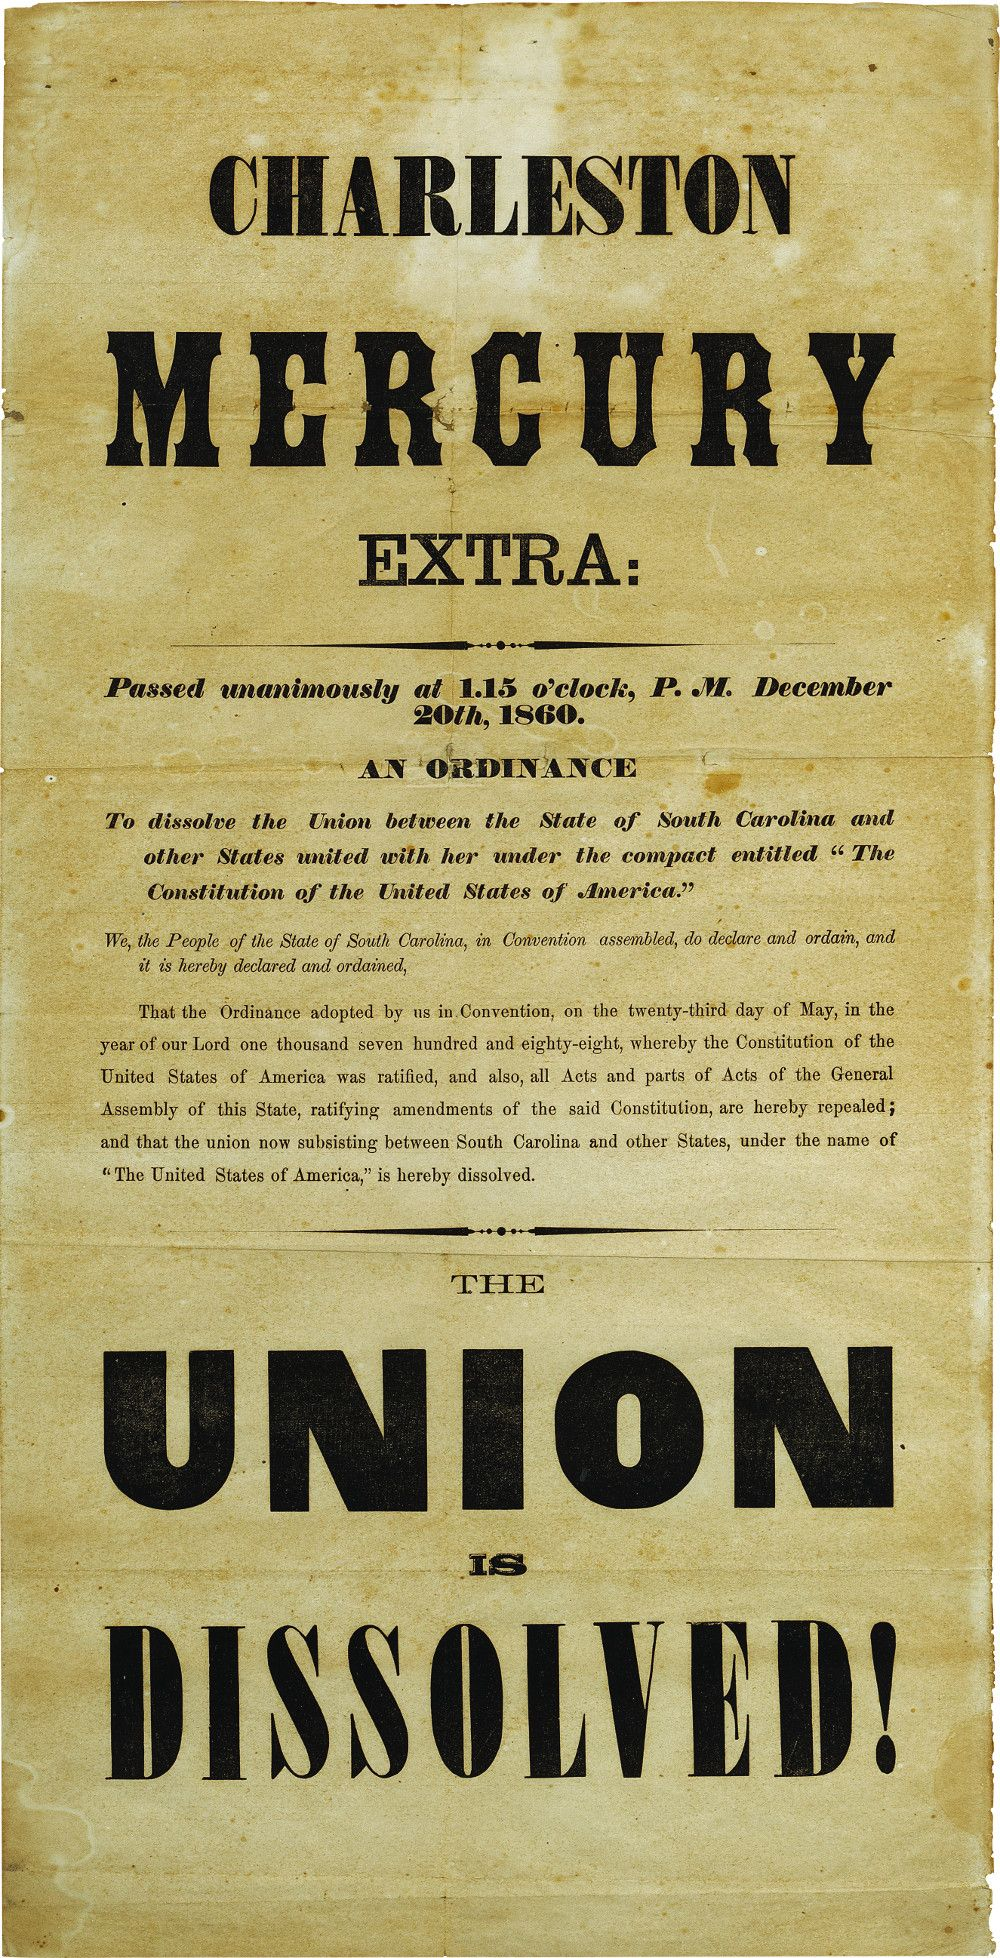 """Union is Dissolved!"" - South Carolina Secession Ordinance Poster"